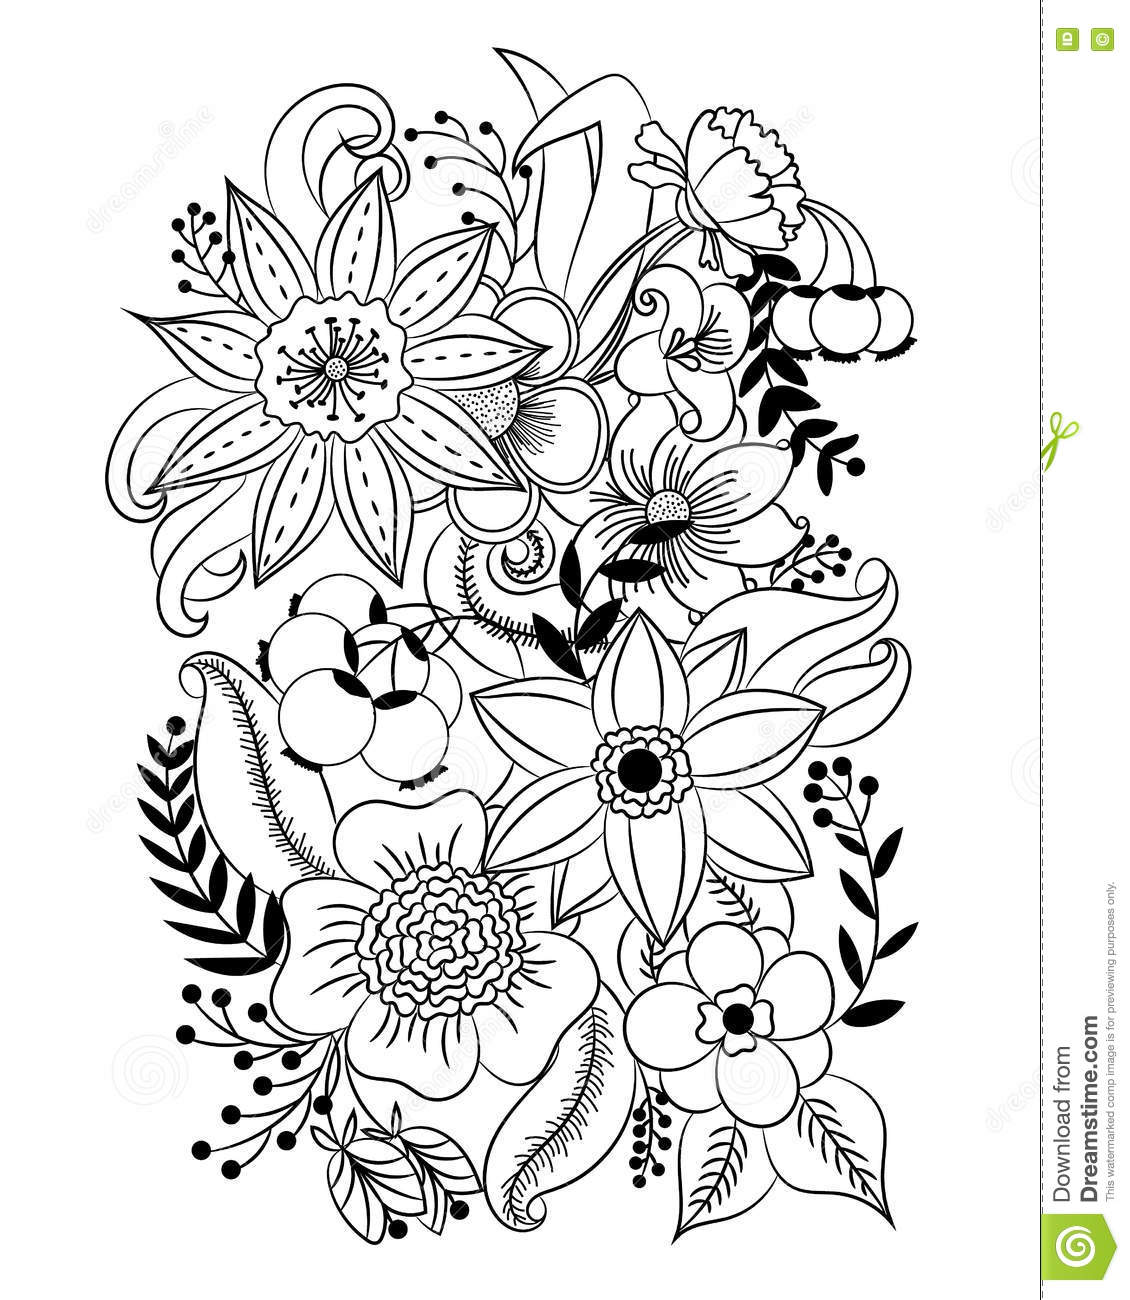 Coloring Page With Flowers And Leaves Stock Vector - Illustration of ...